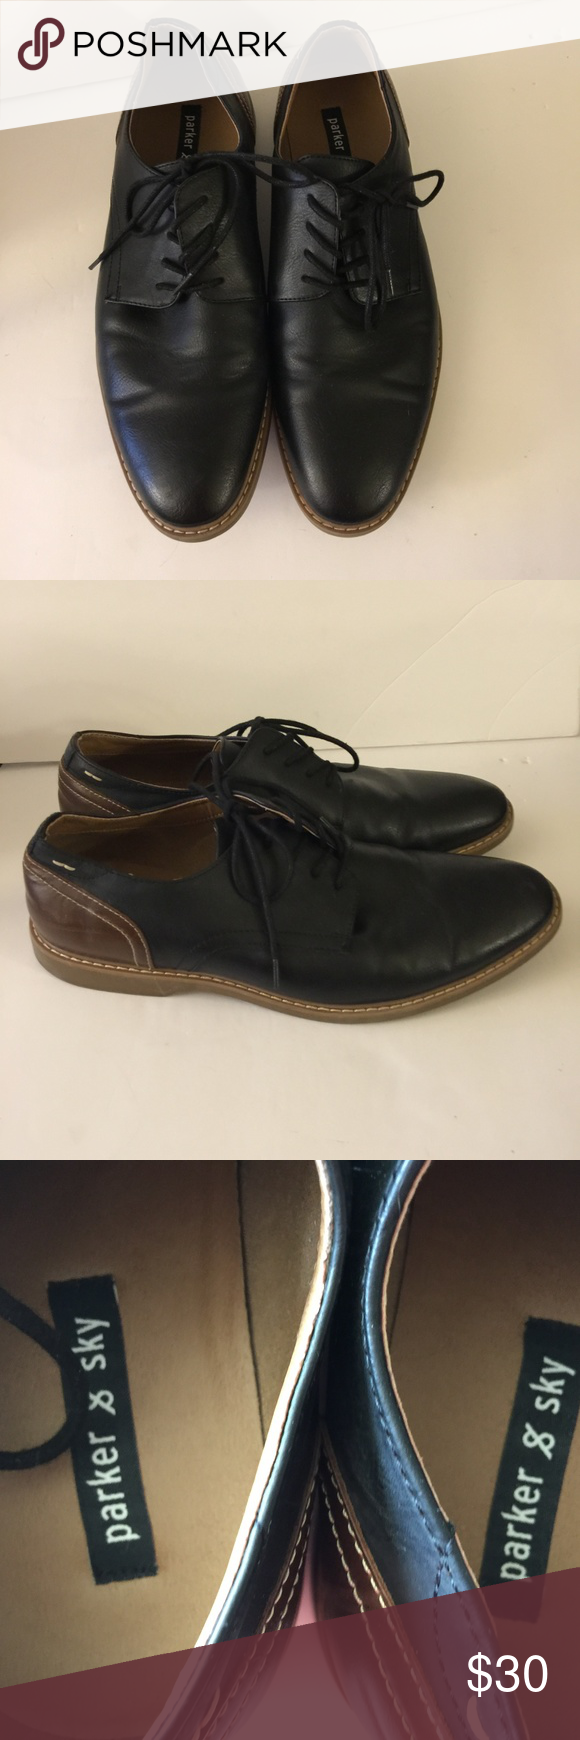 Parker & Sky Black and Brown Lace Up Oxford Shoes Parker & Sky Black and Brown Lace Up Oxford Shoes Size 10.5 Rubber Soles Great Condition   Item500#0317 Parker & Sky Shoes Oxfords & Derbys